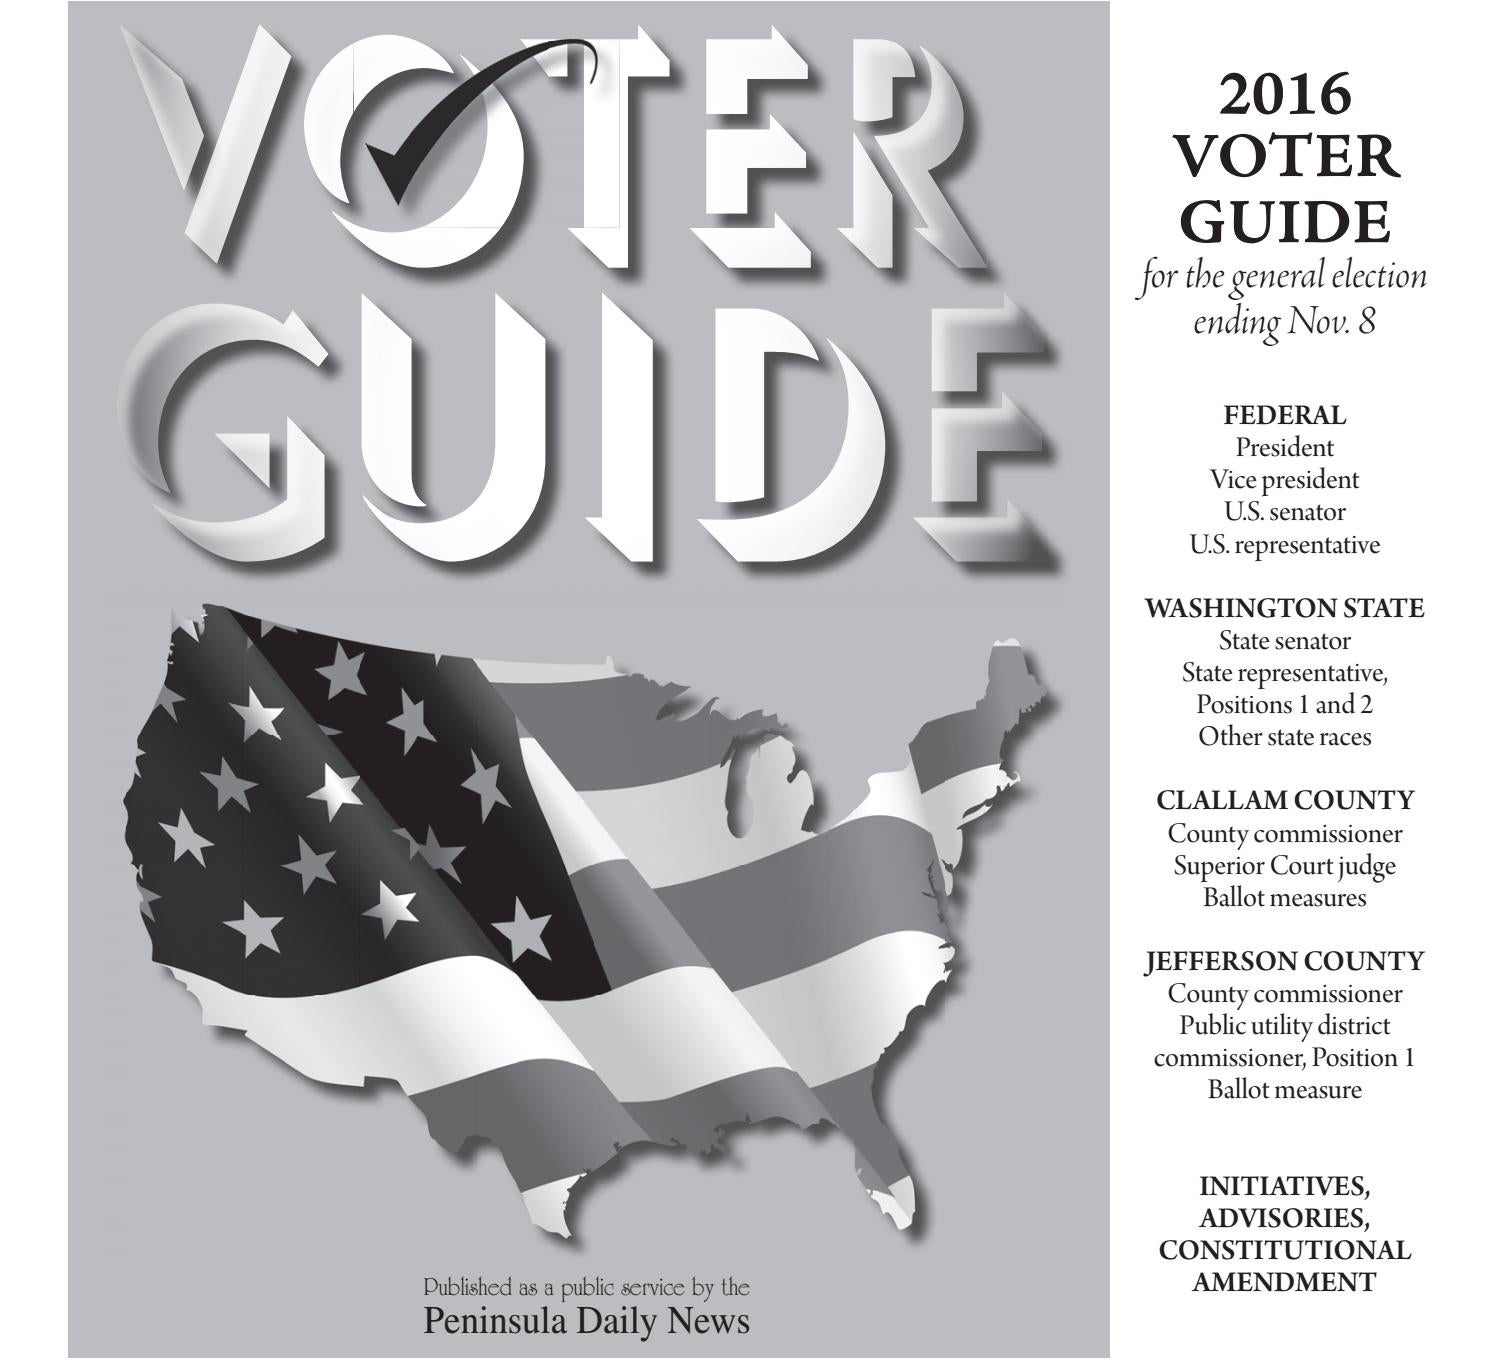 special sections - voters guide by sound publishing - issuu